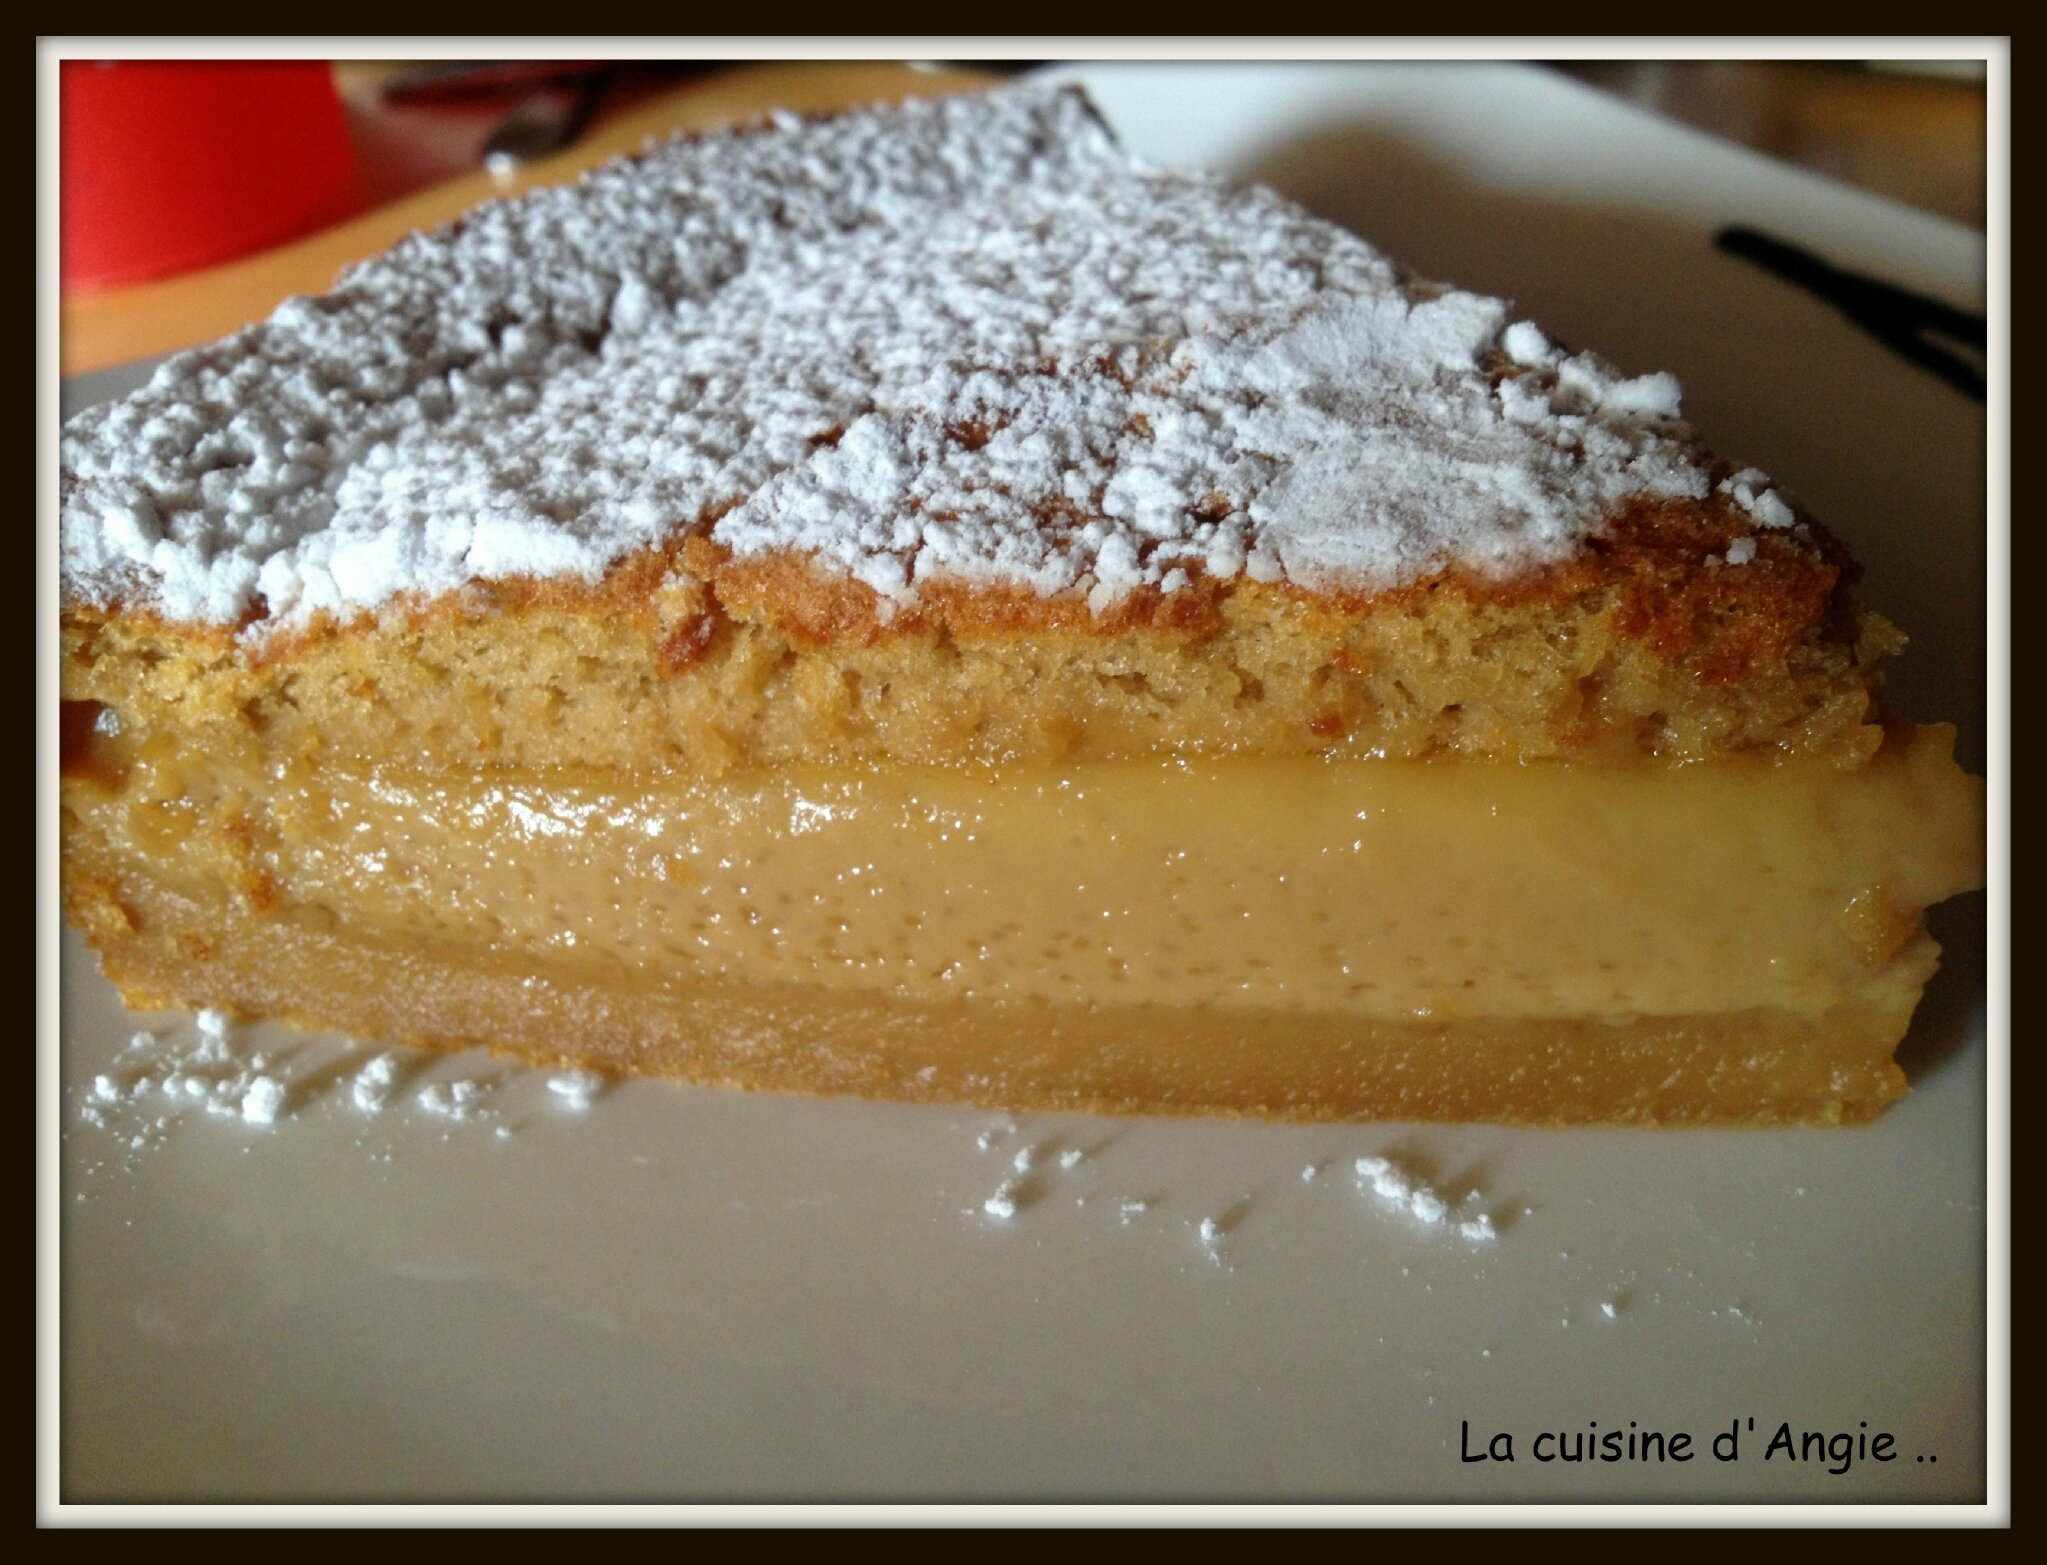 Gateau magic au speculoos